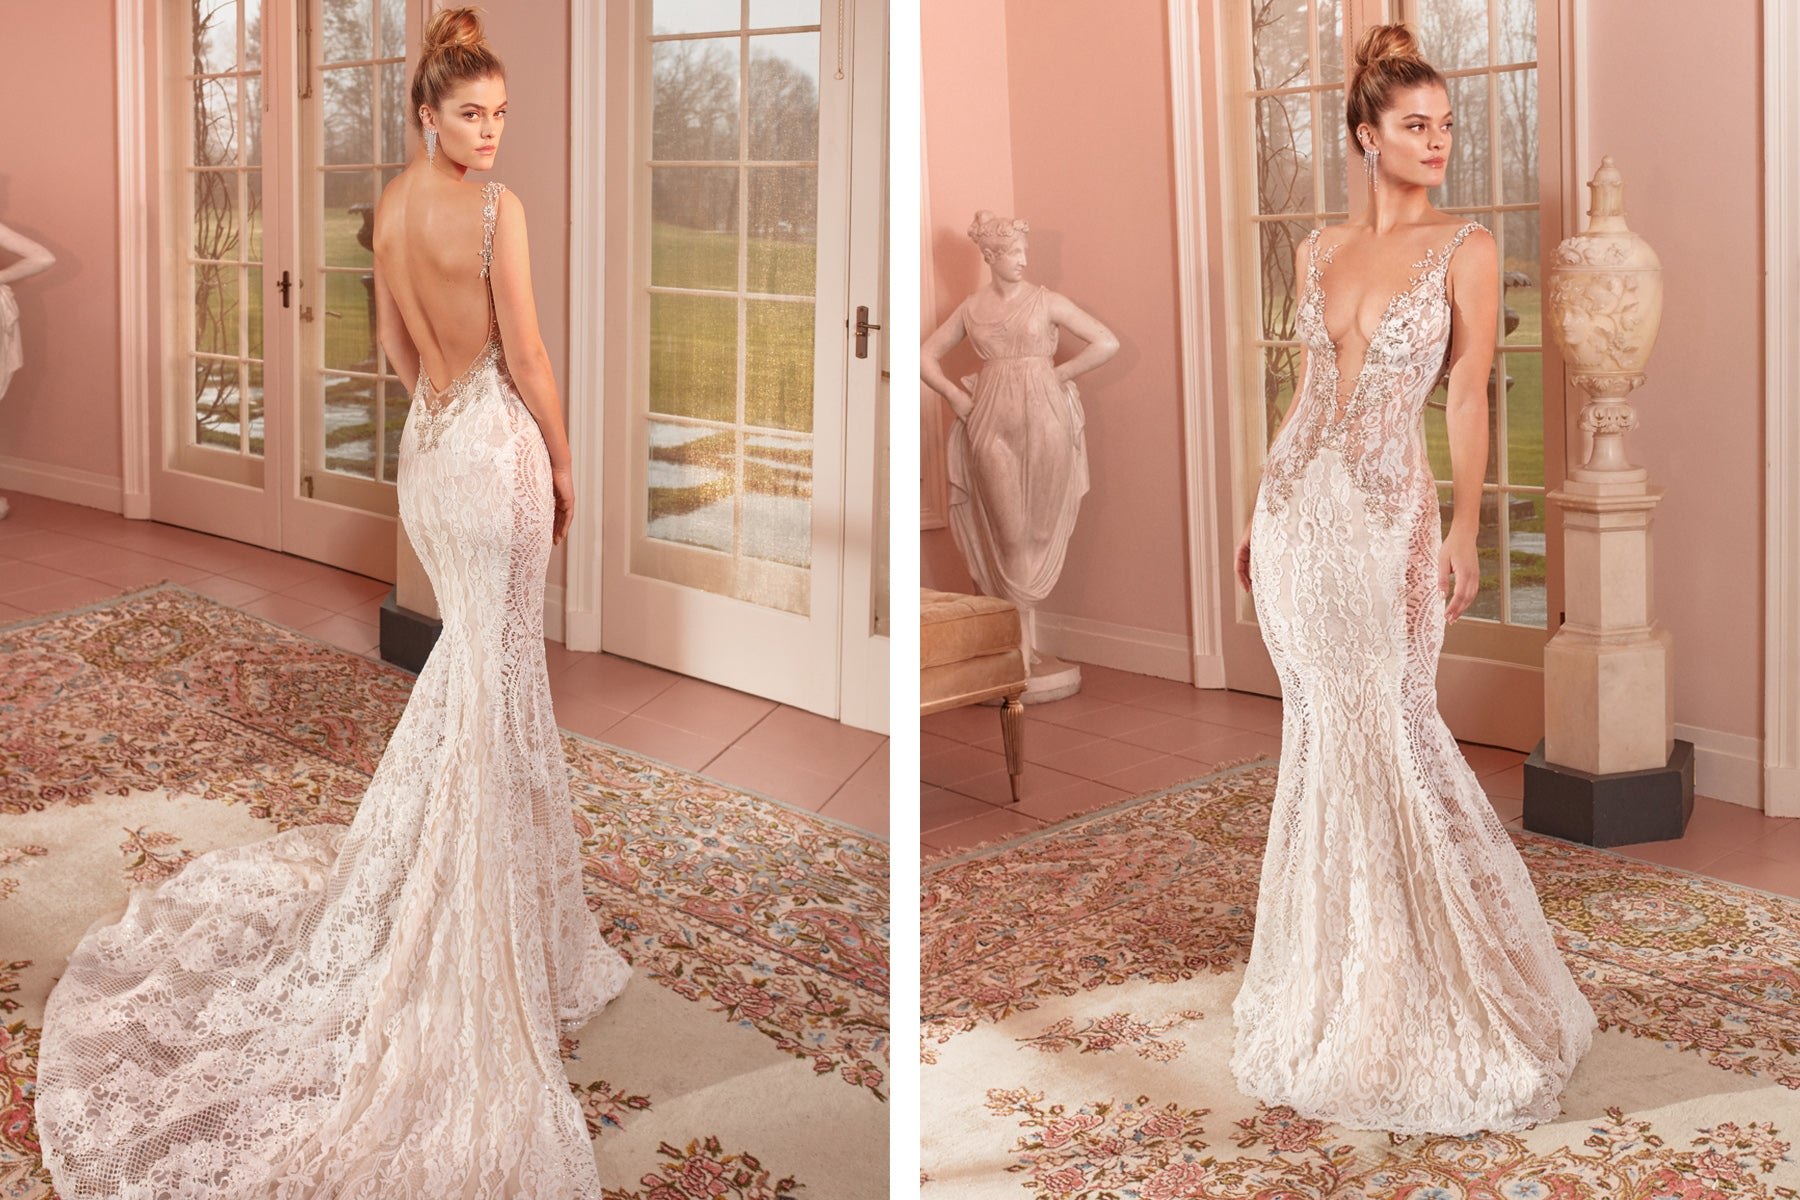 Eternal_Bridal_Wedding_Dress_Galia_Lahav_Haute_Couture_Queen_of_Hearts_Luca